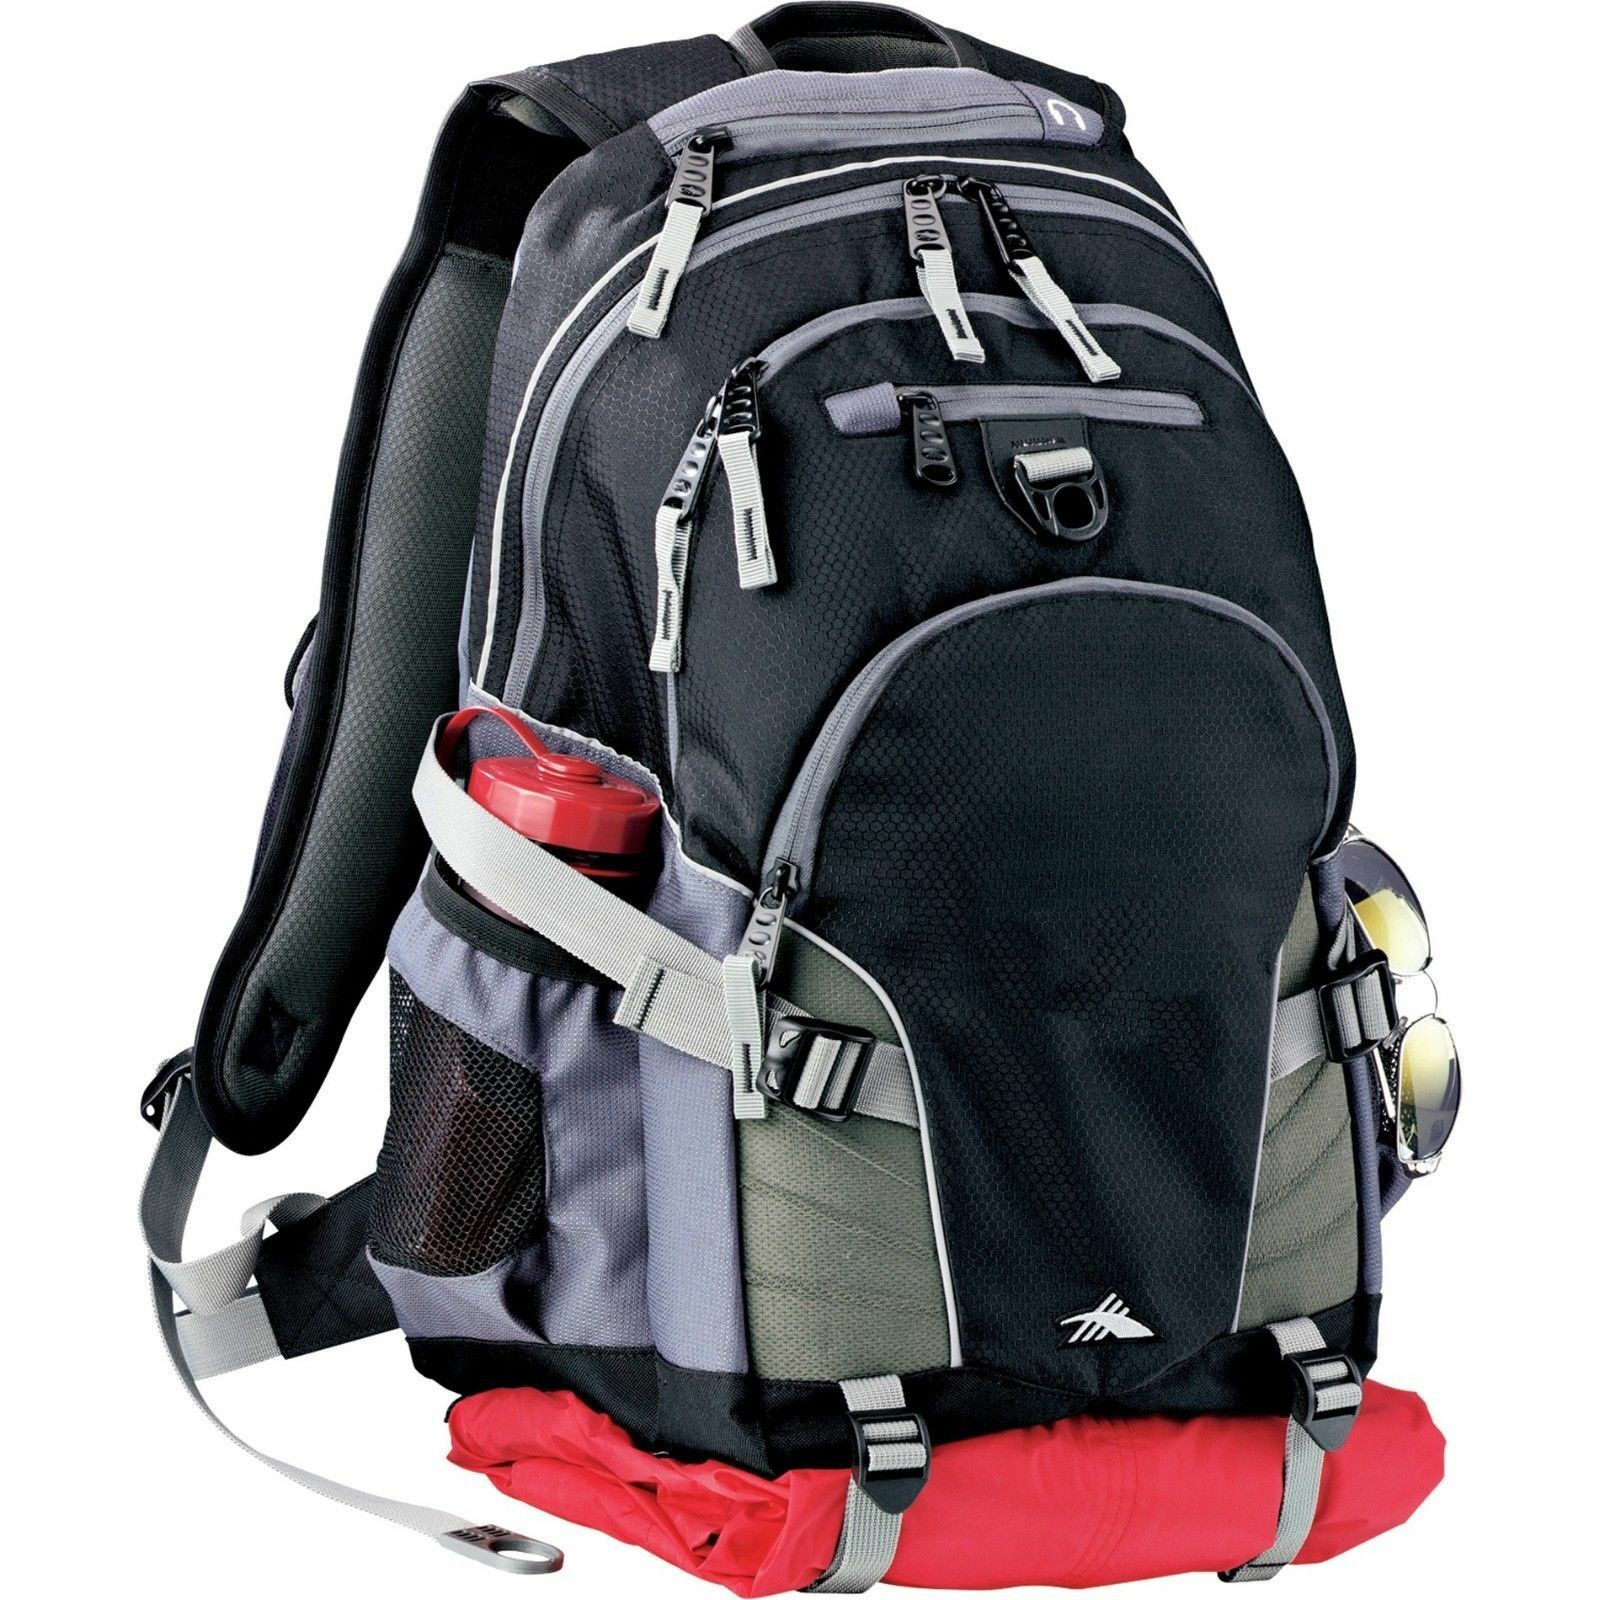 Top 10 College Backpacks